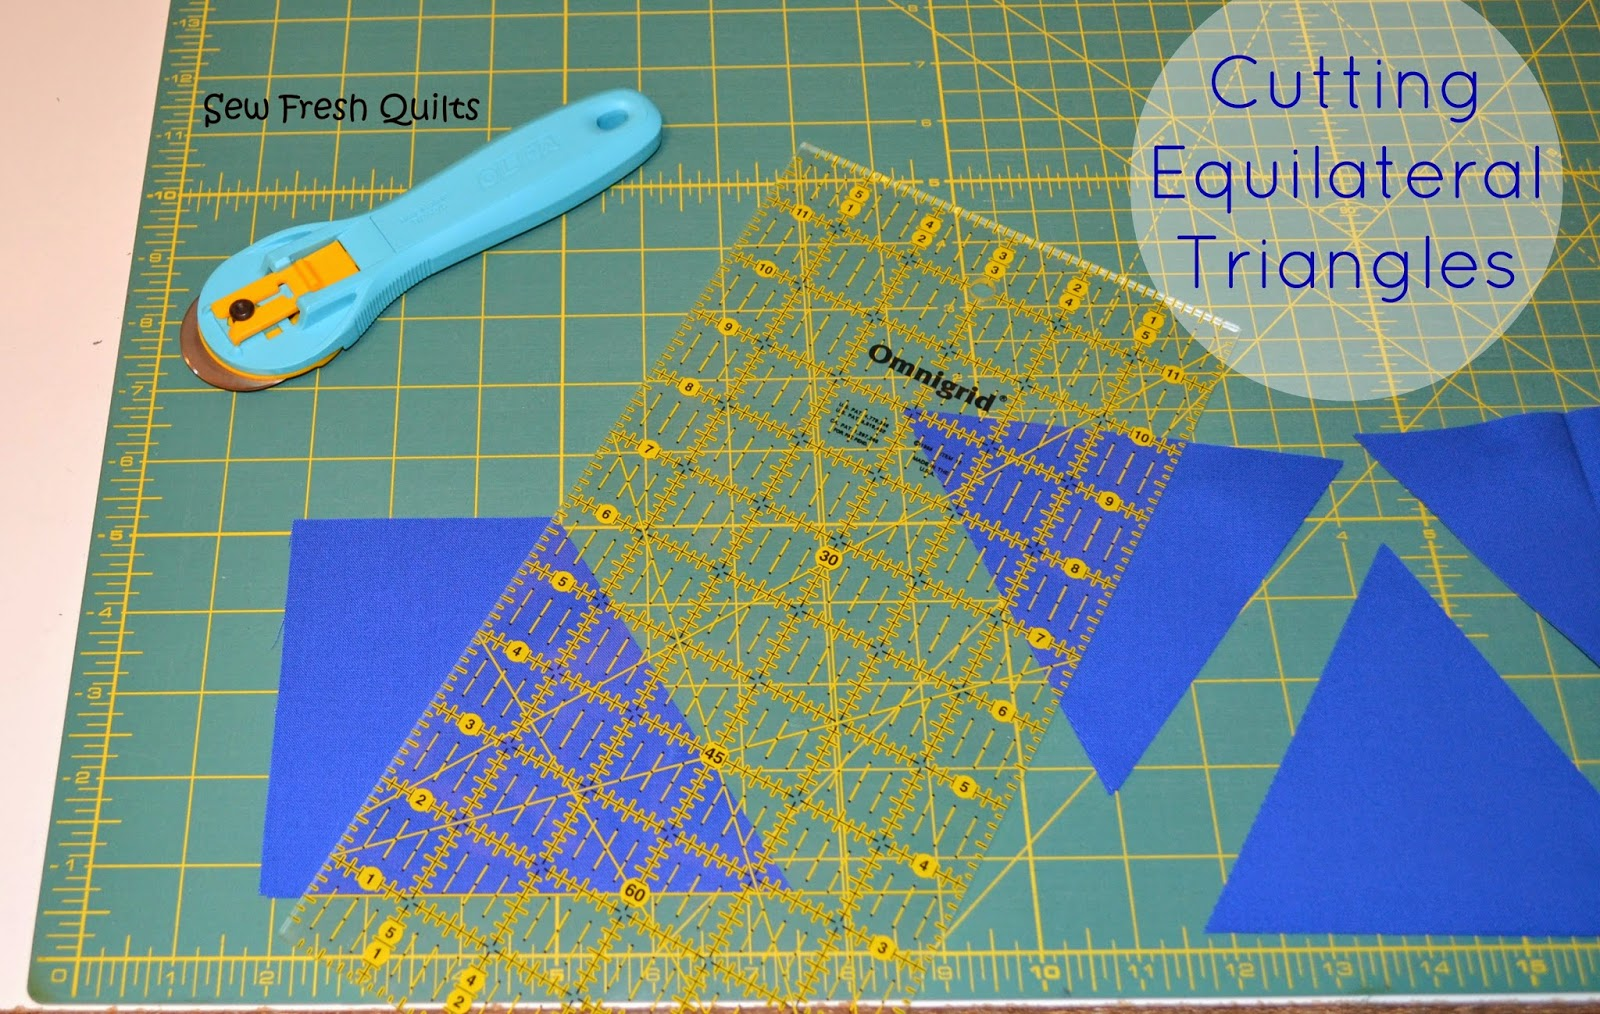 Cutting Equilateral Triangles tutorial